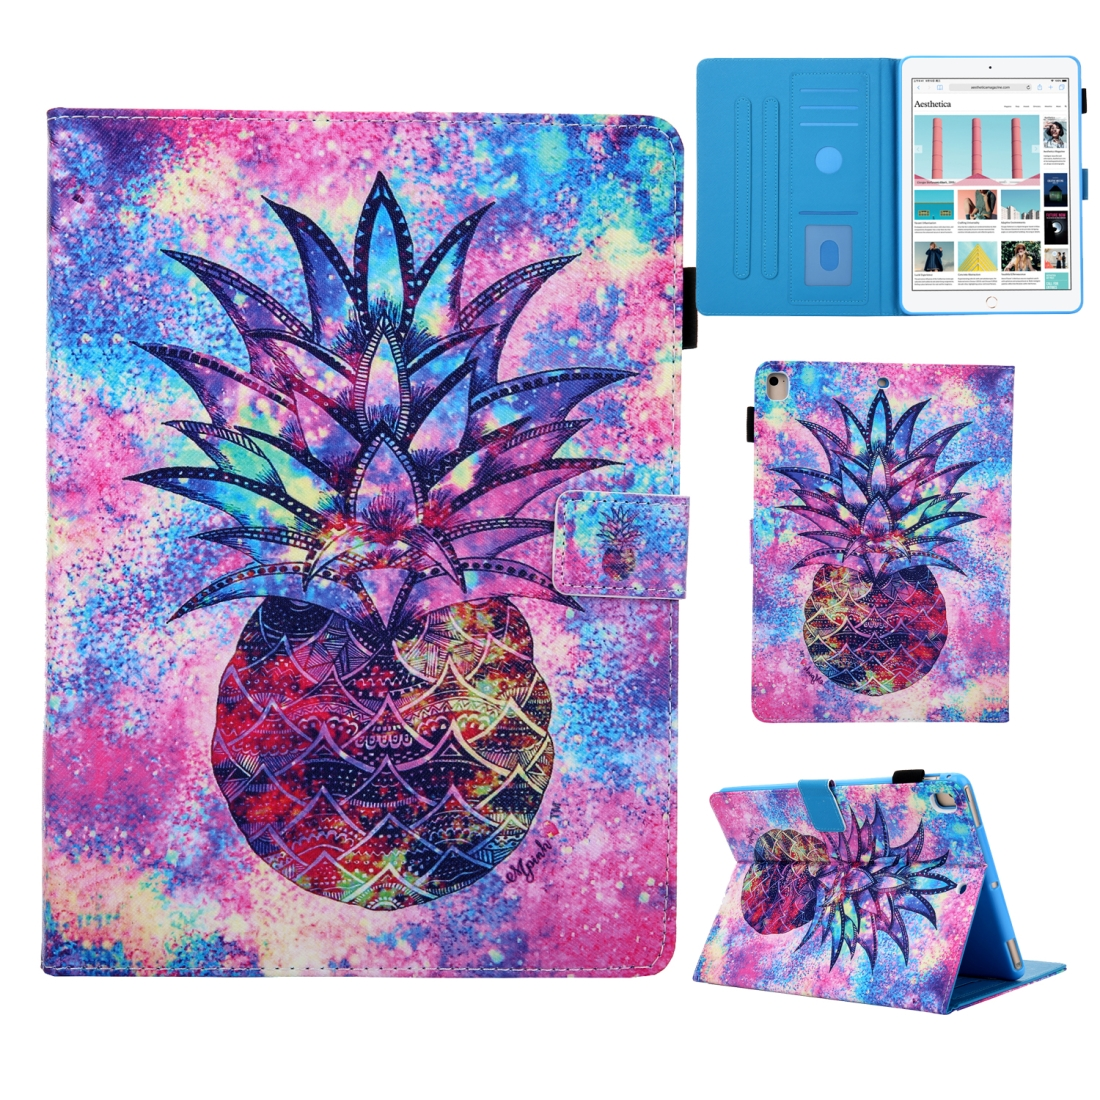 iPad 7th Generation Case (10.2 Inch) 3D Leather Case with Sleeve  (Pineapple)